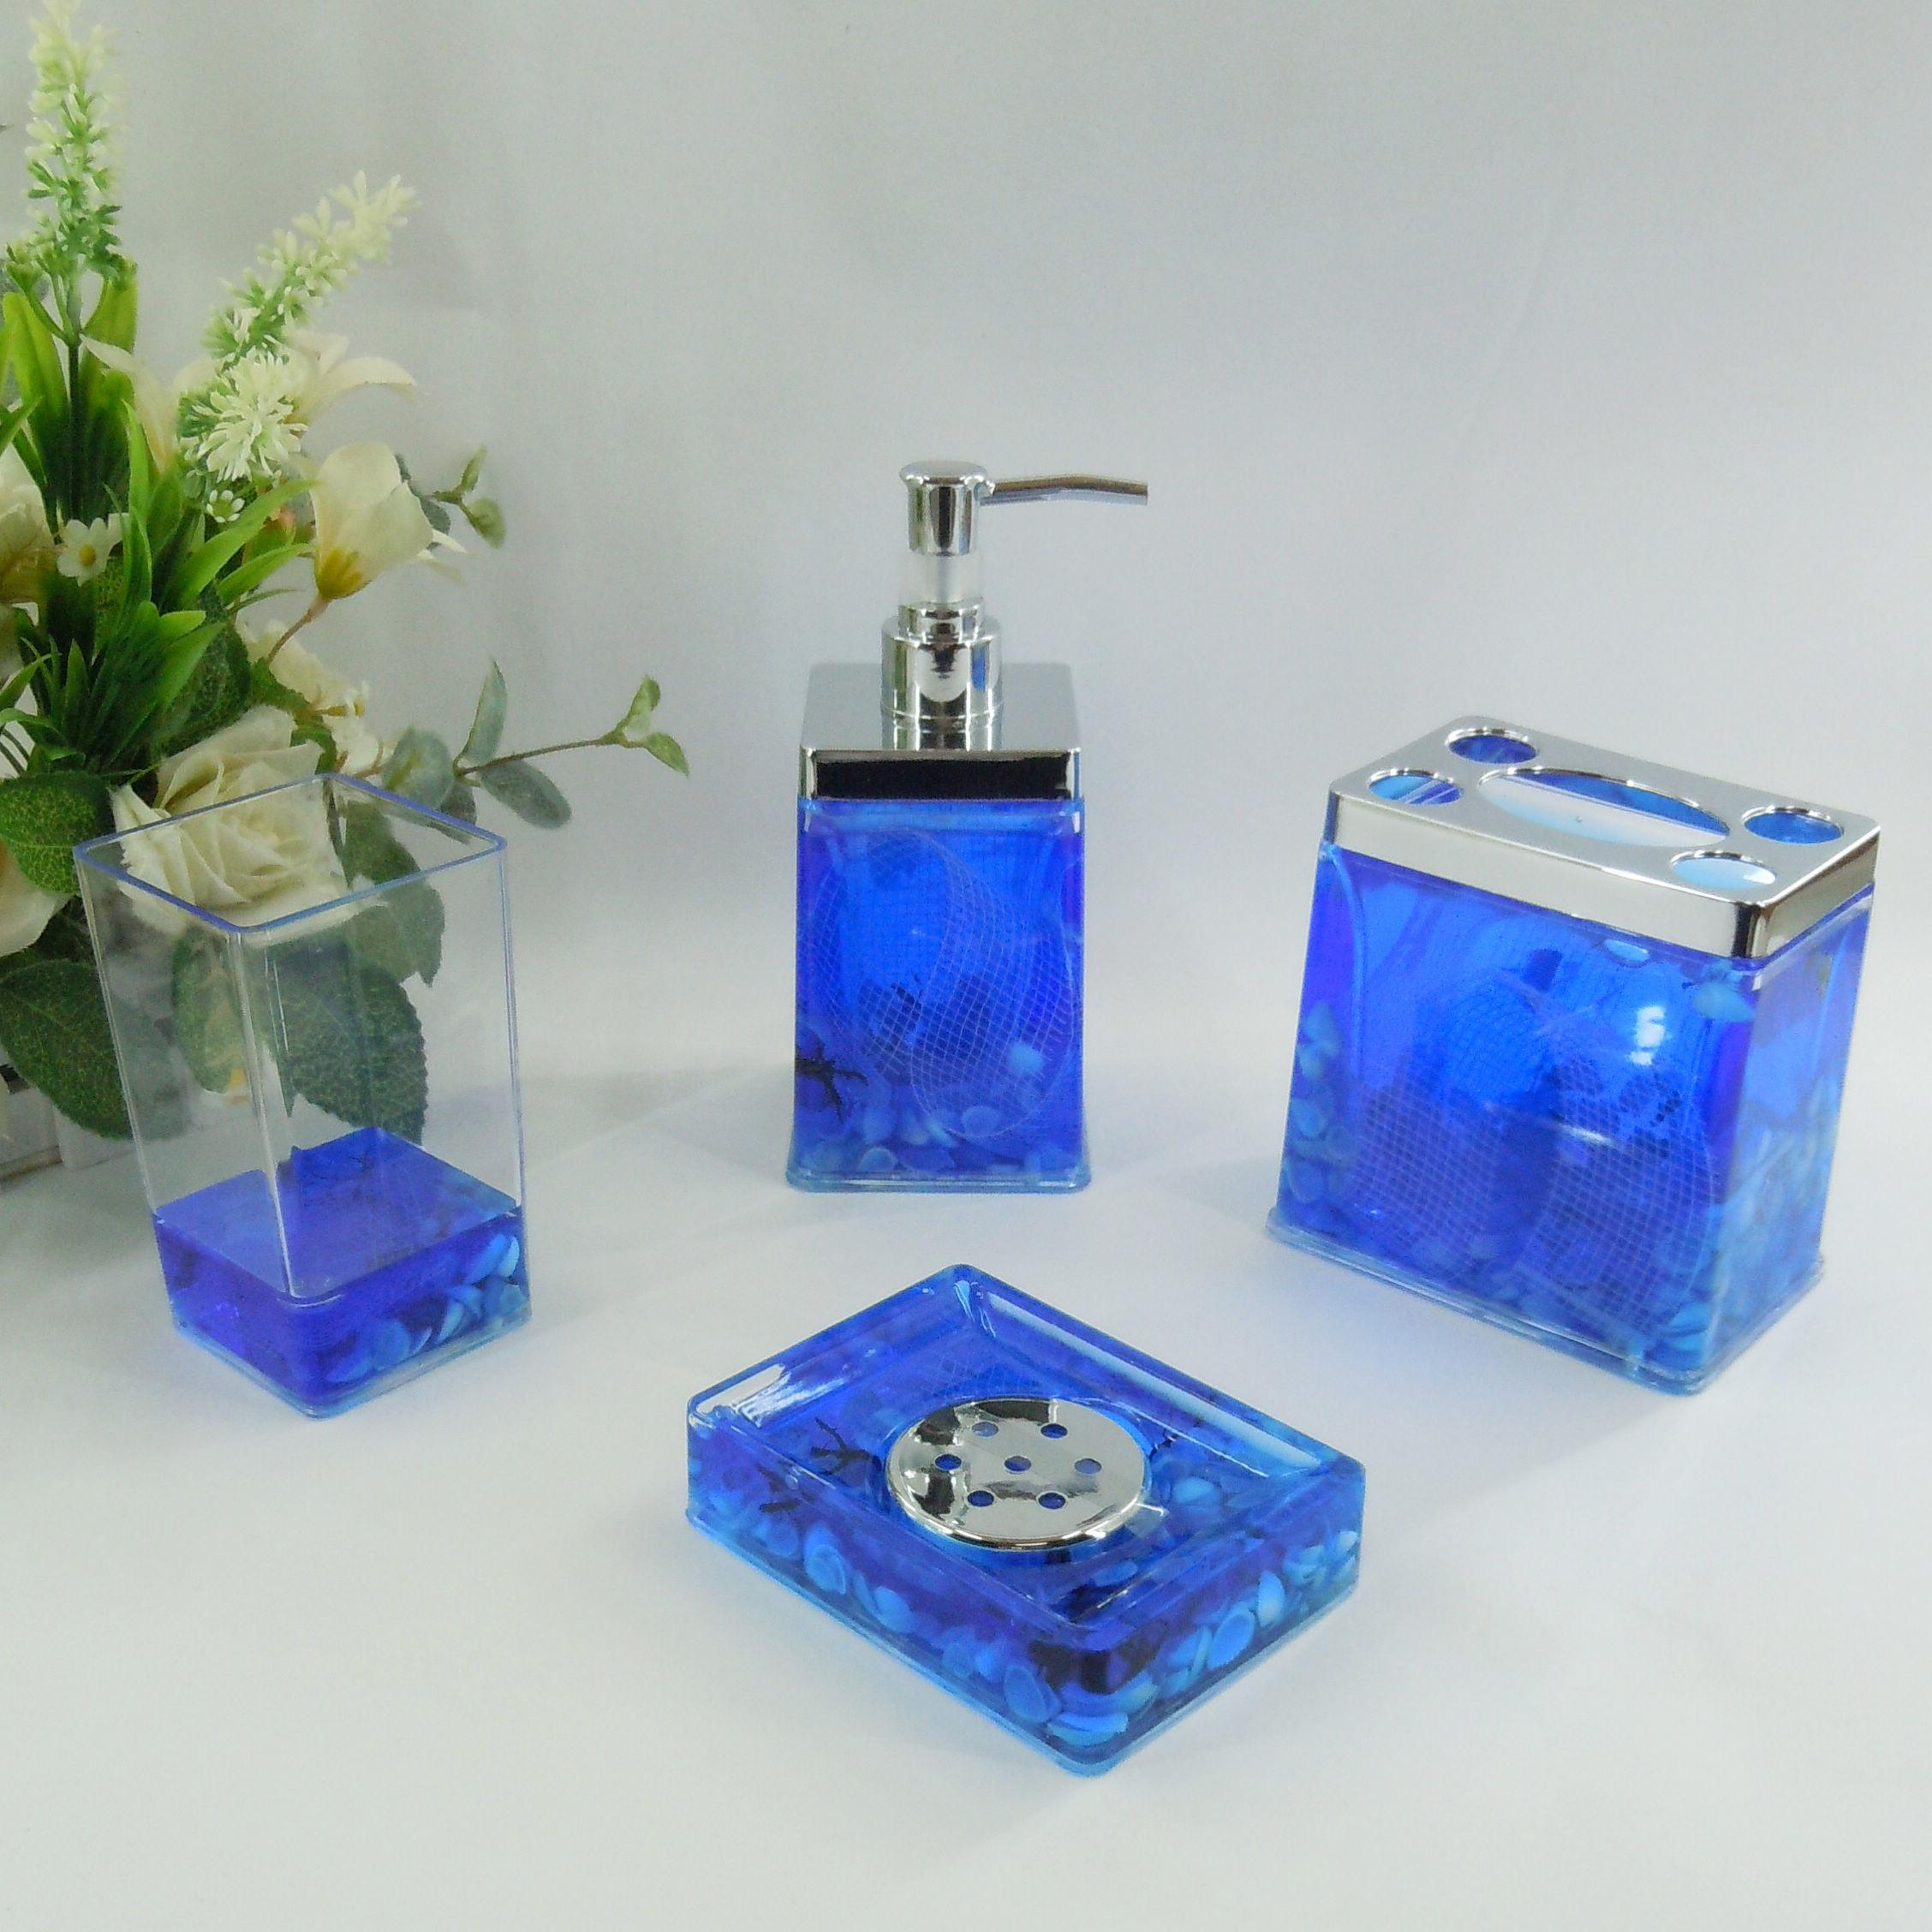 Turquoise Bathroom Accessories Sets Home Design Ideas